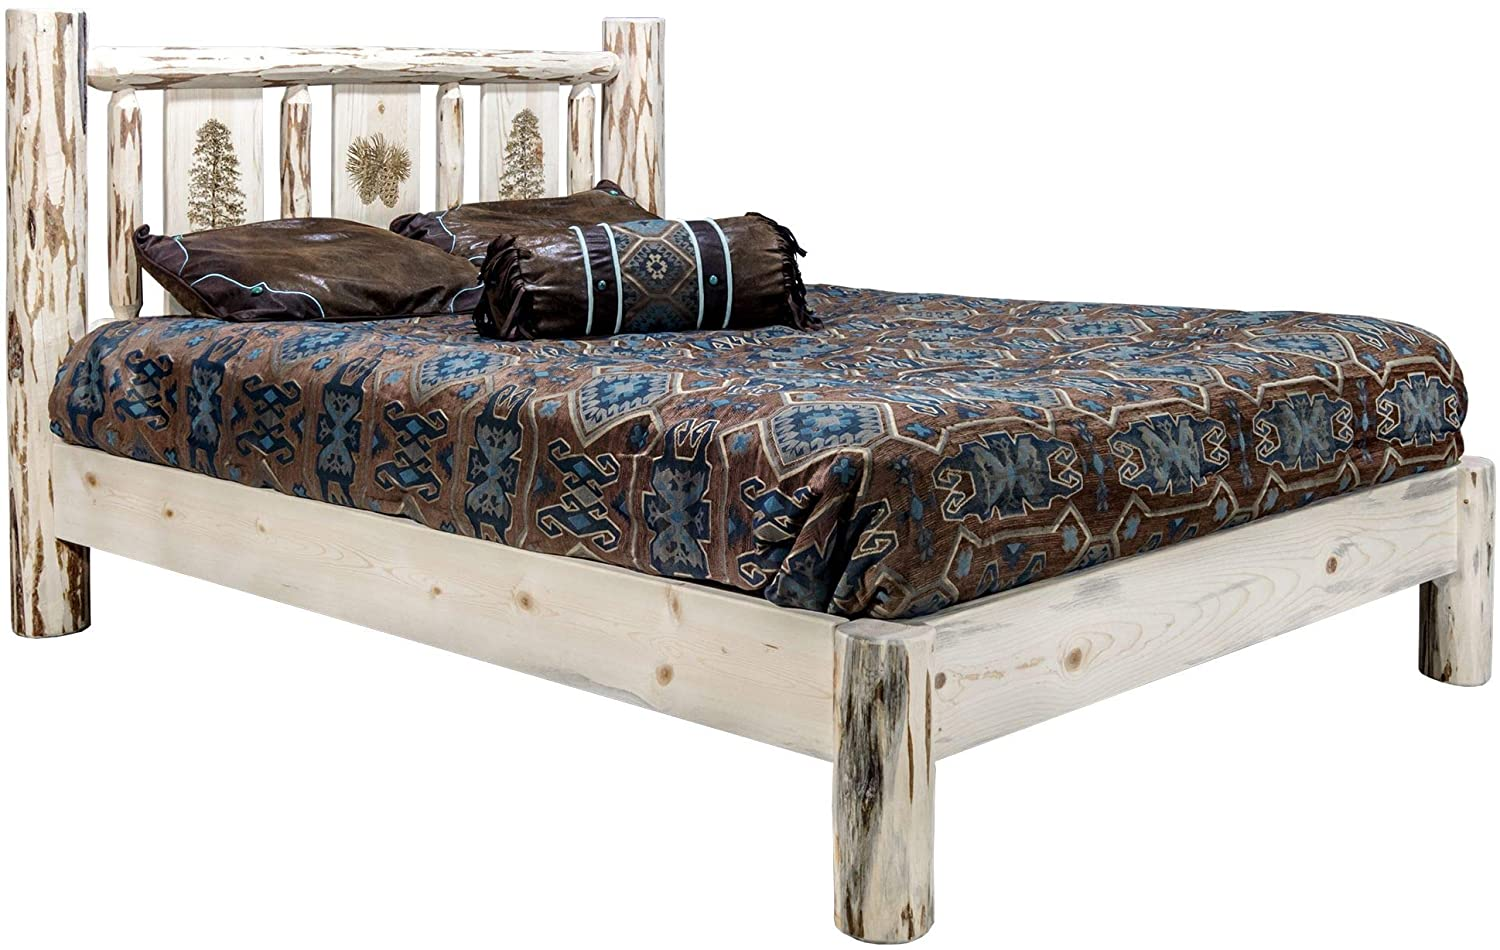 Montana Collection Queen Platform Bed w/Laser Engraved Pine Tree Design, Clear Lacquer Finish